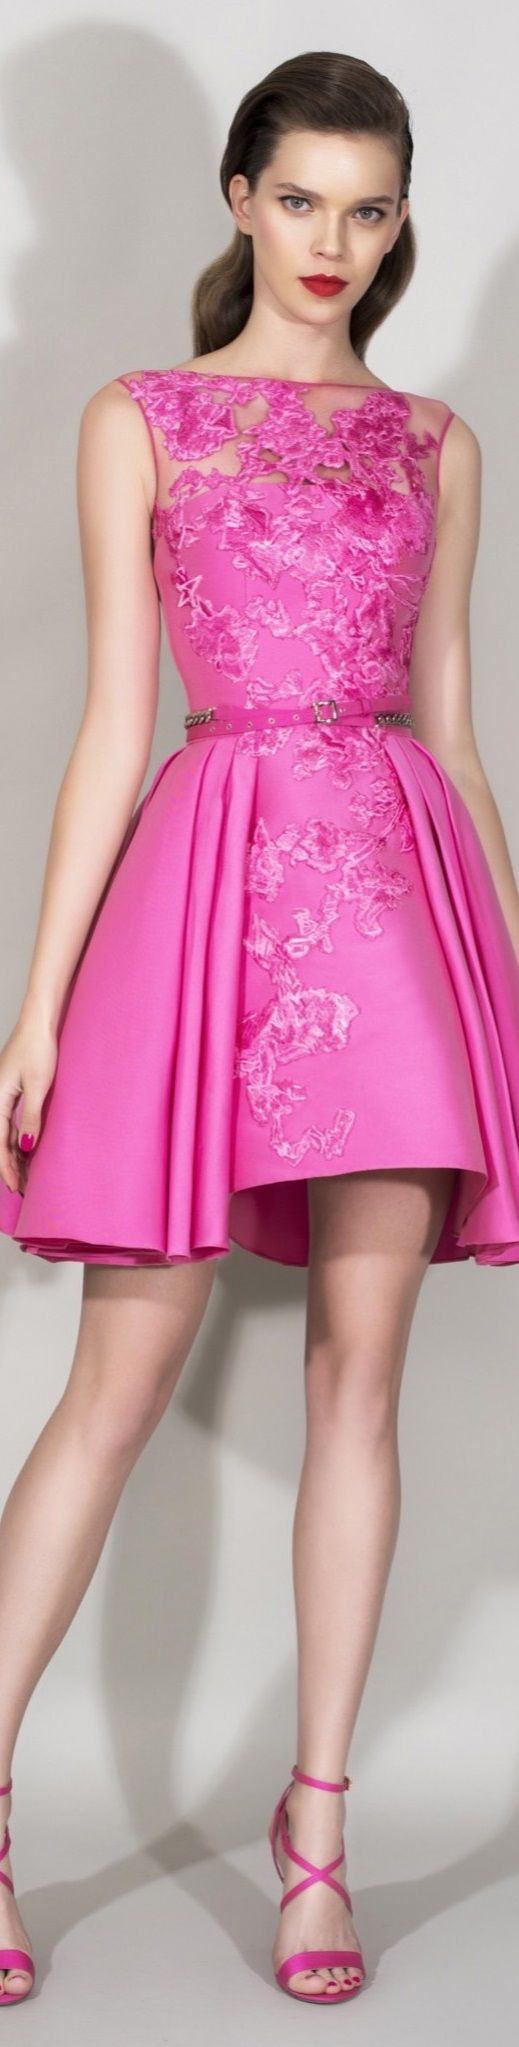 Zuhair Murad resort 2016 | dresses for wedding guest | Pinterest ...